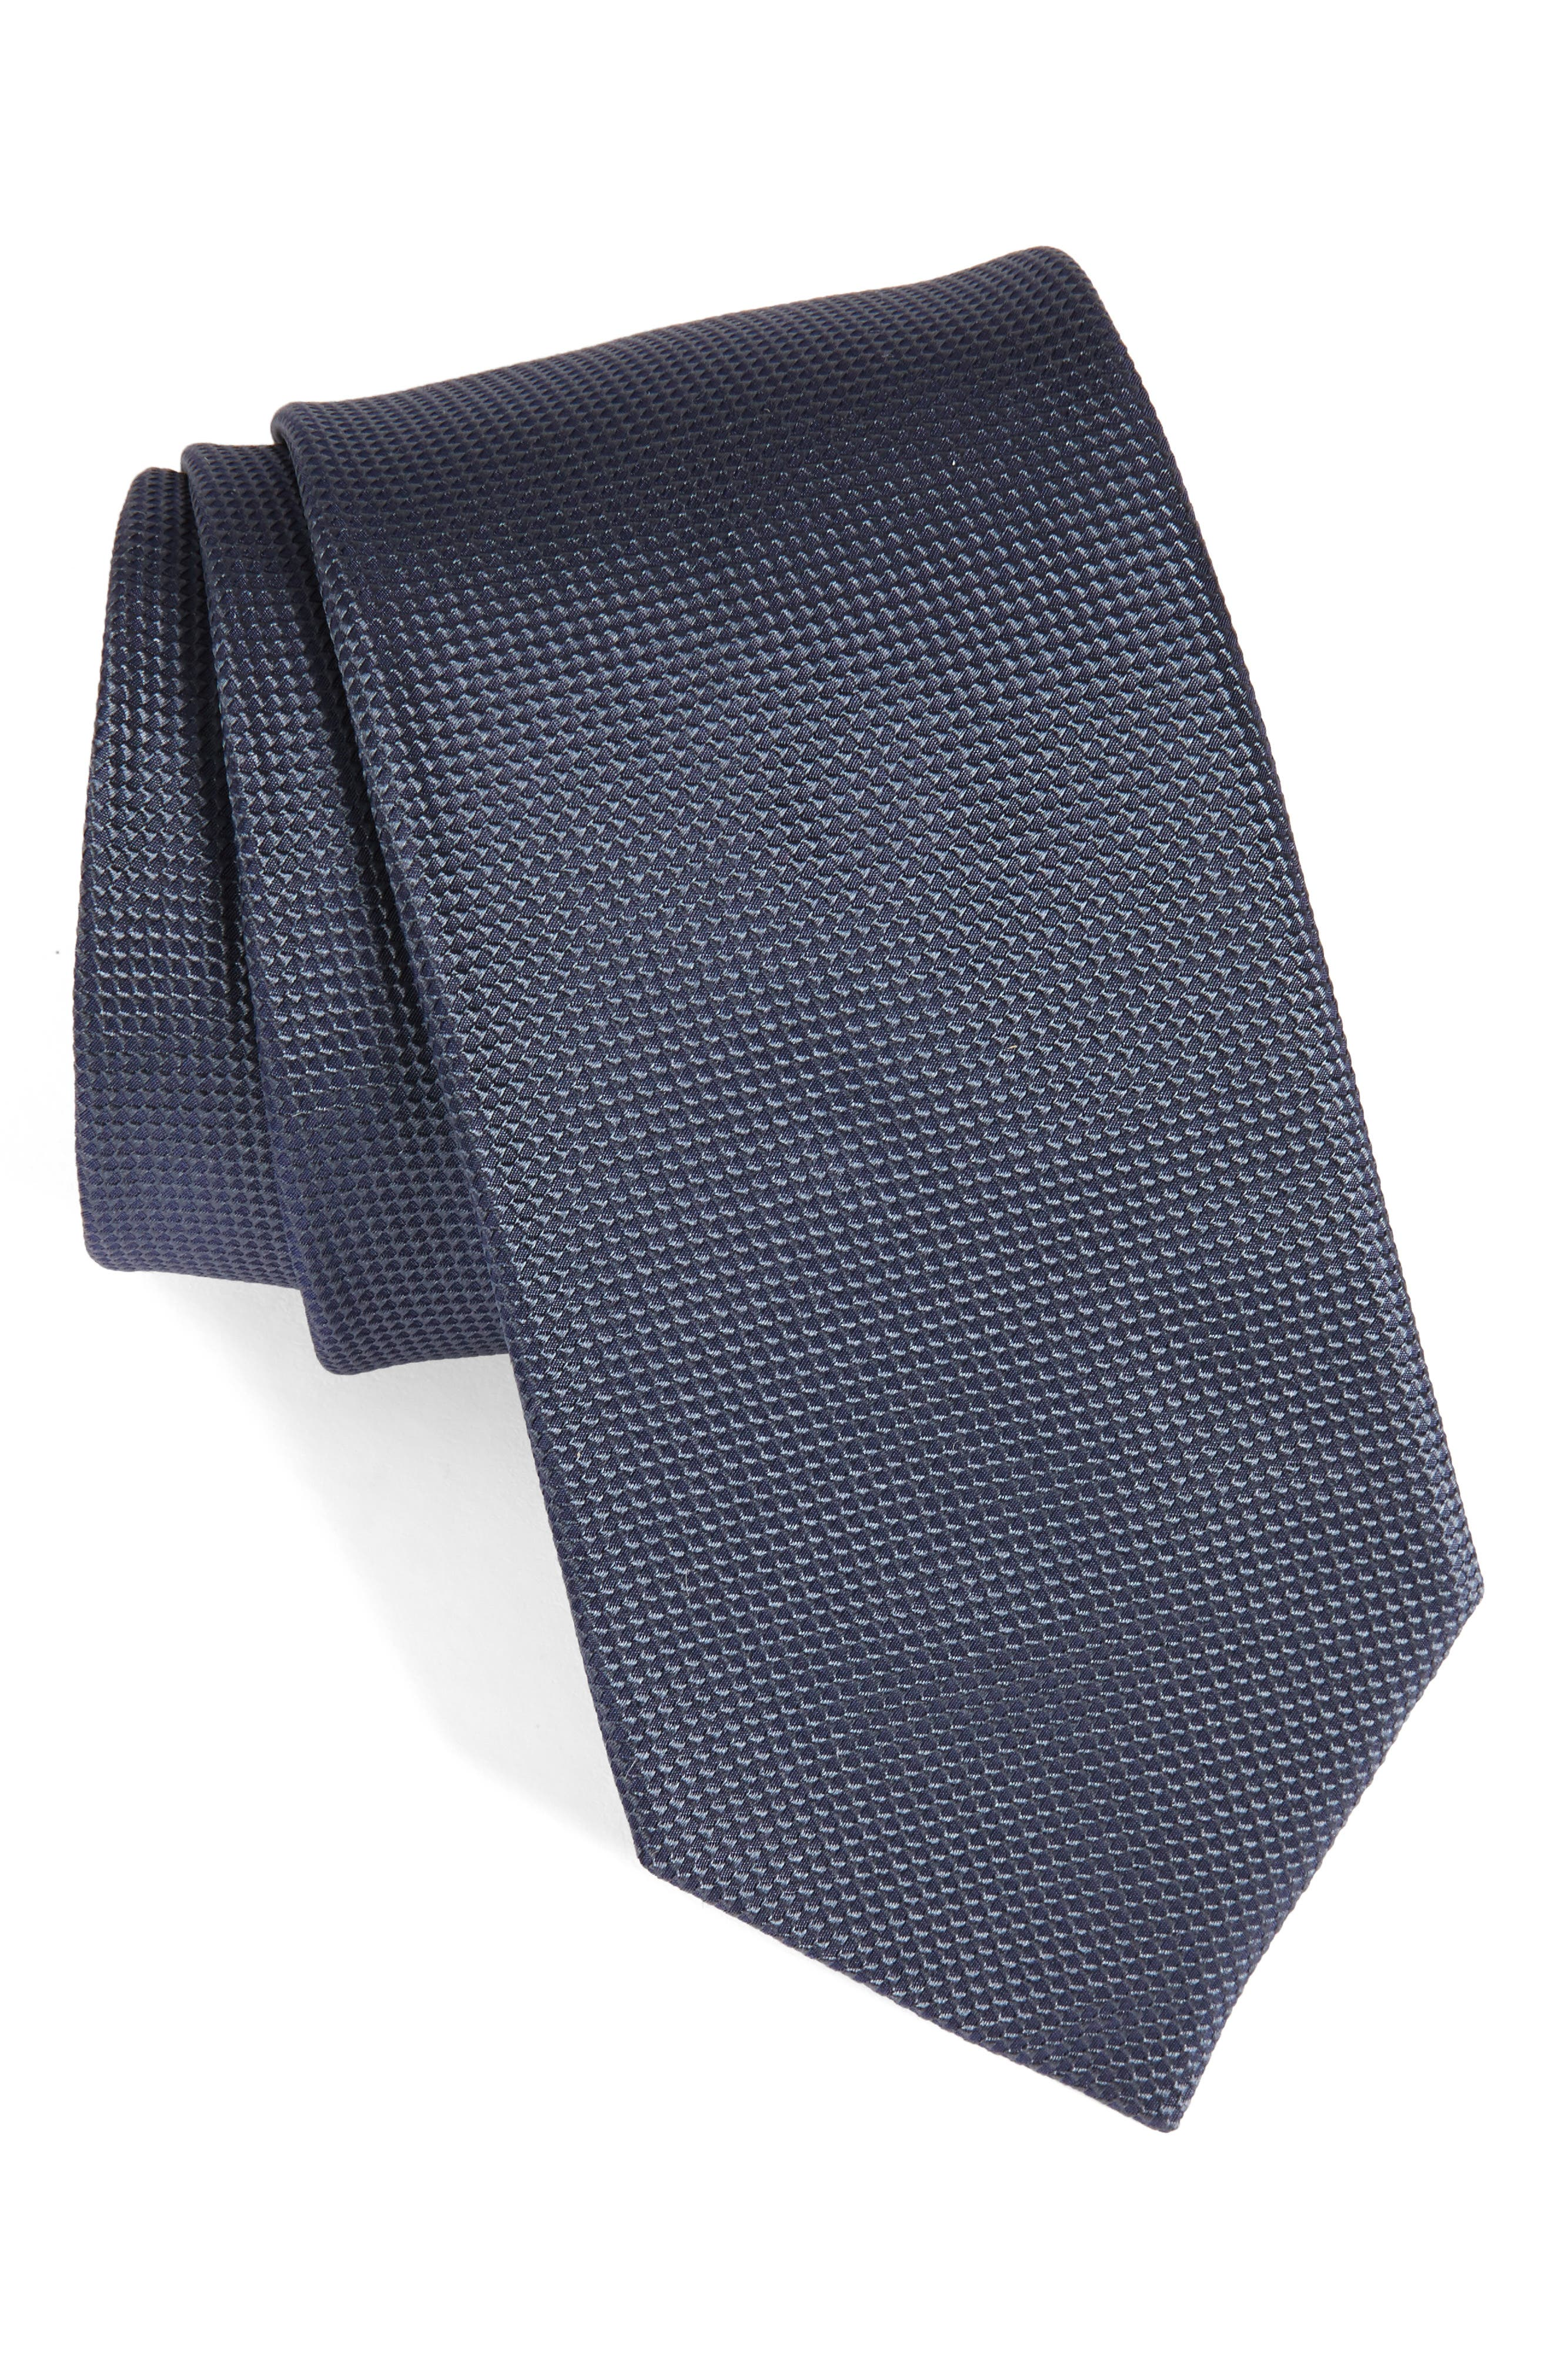 Solid Silk Tie,                             Main thumbnail 1, color,                             021